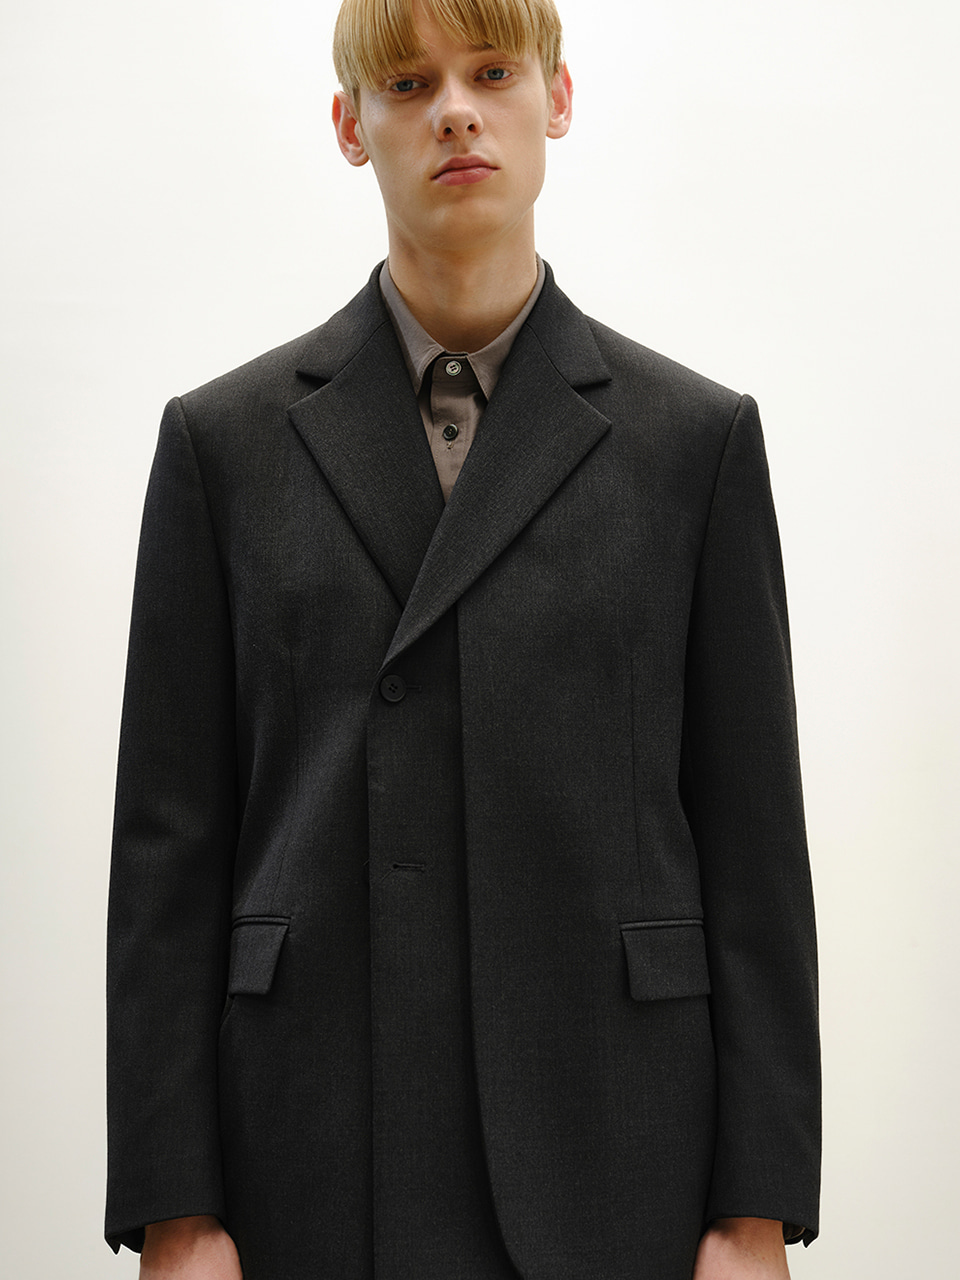 [FW20] LAYERED DOUBLE BLAZER(Dark Grey) IEY [FW20] LAYERED DOUBLE BLAZER(Dark Grey)